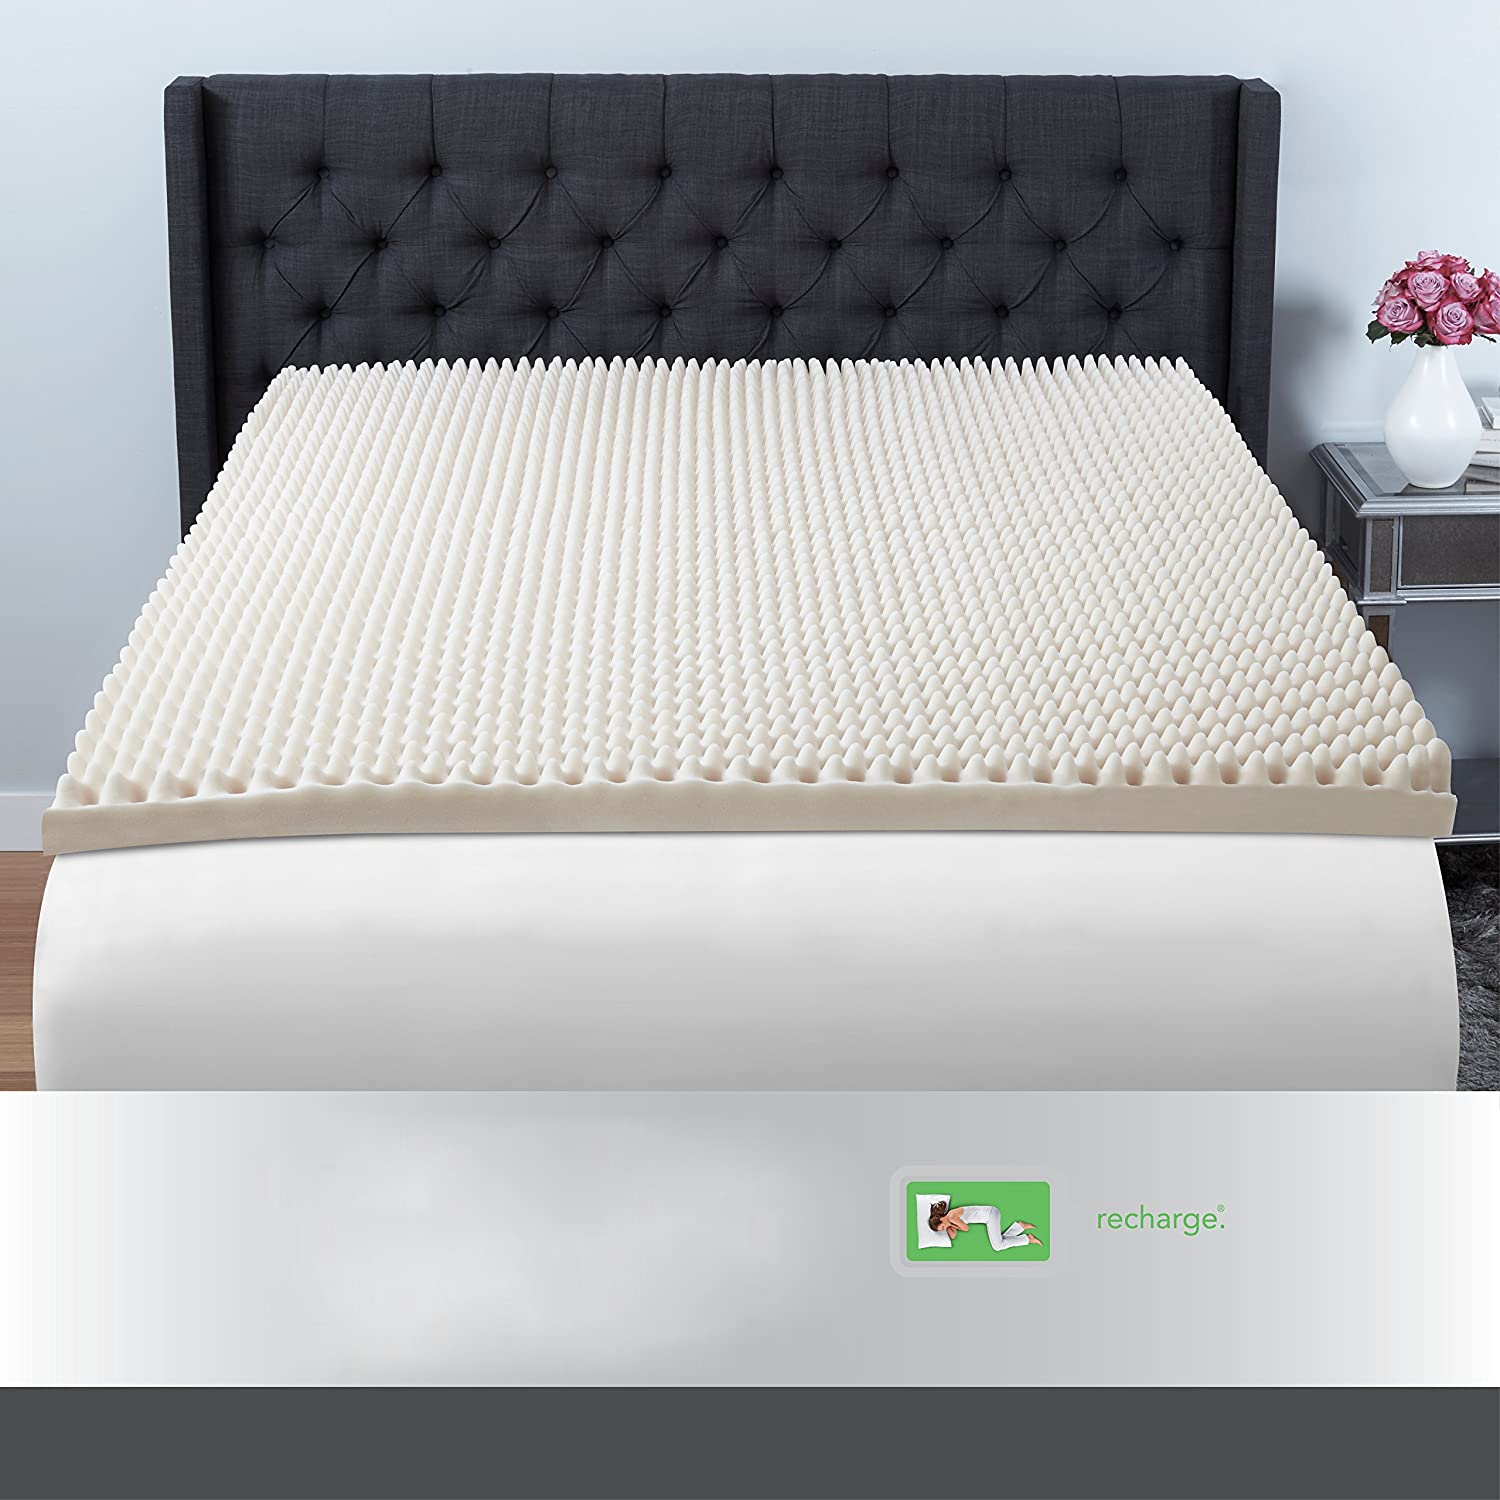 3 inch twin size memory foam mattress topper sleep pad bed cover egg crate room 25695207695 ebay. Black Bedroom Furniture Sets. Home Design Ideas